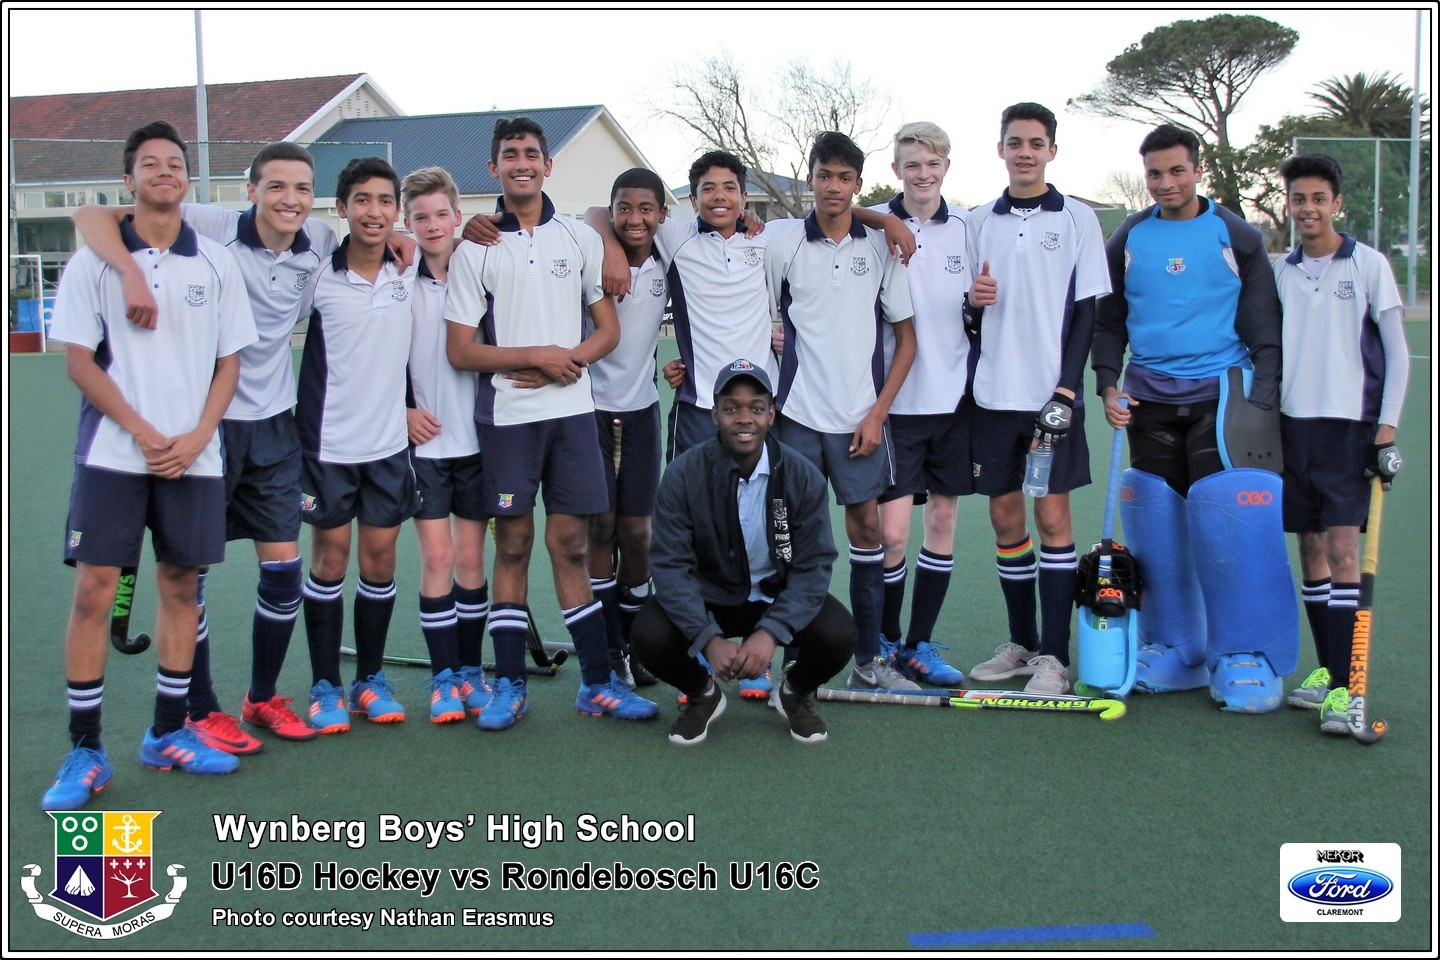 U16D vs Rondebosch U16C, Friday 3 August 2018